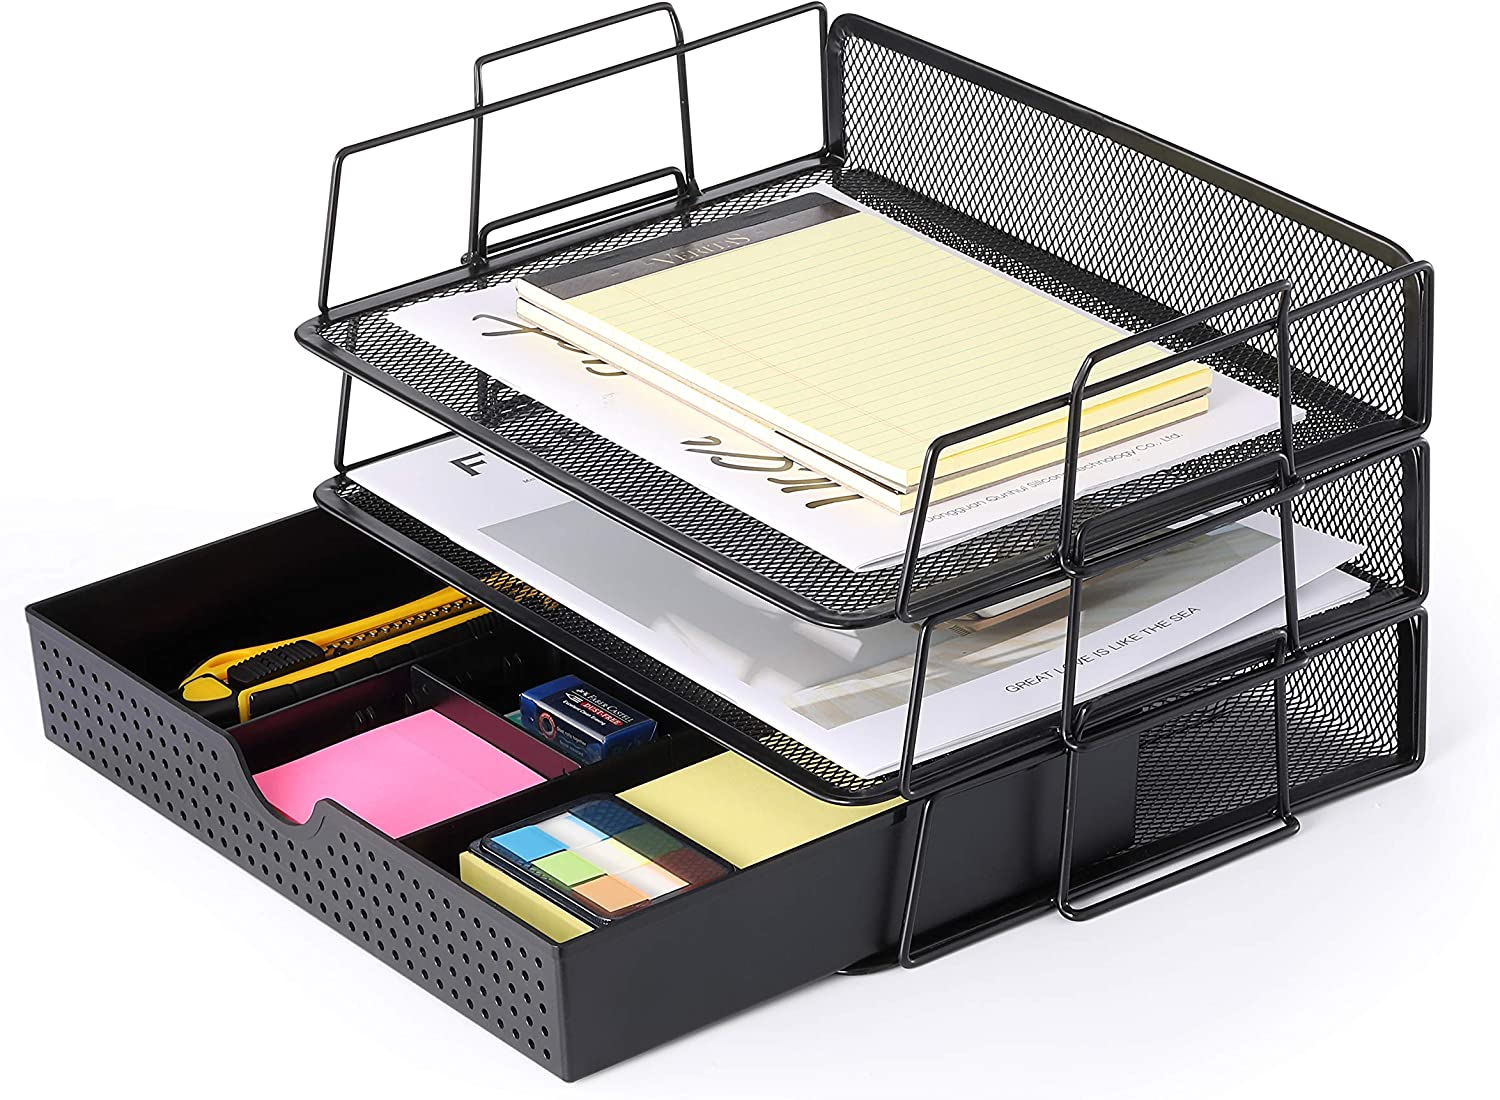 CAXXA 37 Trays Stackable Letter Tray, Desk File Organizer, Desktop Paper  Tray Holder with Drawer, Black